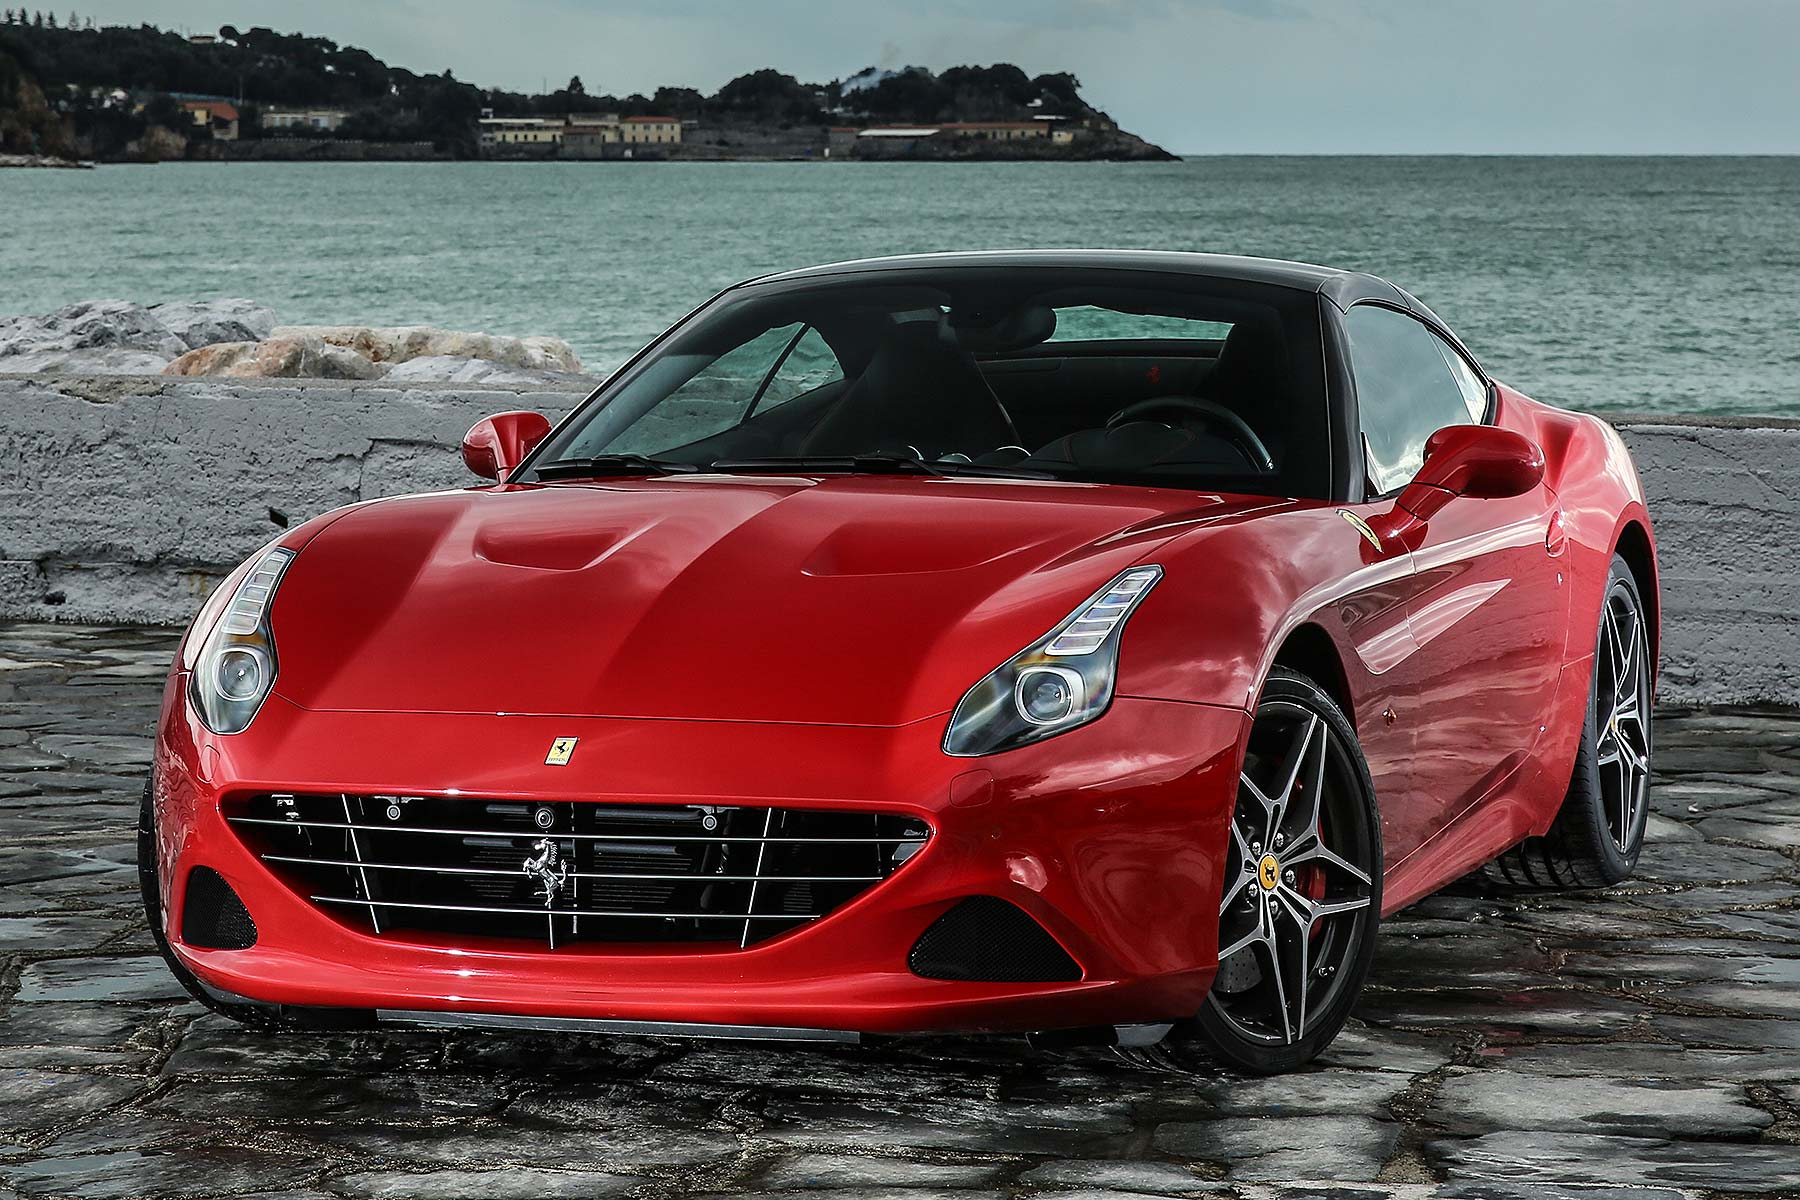 2016 ferrari california t handling speciale review first drive motoring research. Black Bedroom Furniture Sets. Home Design Ideas